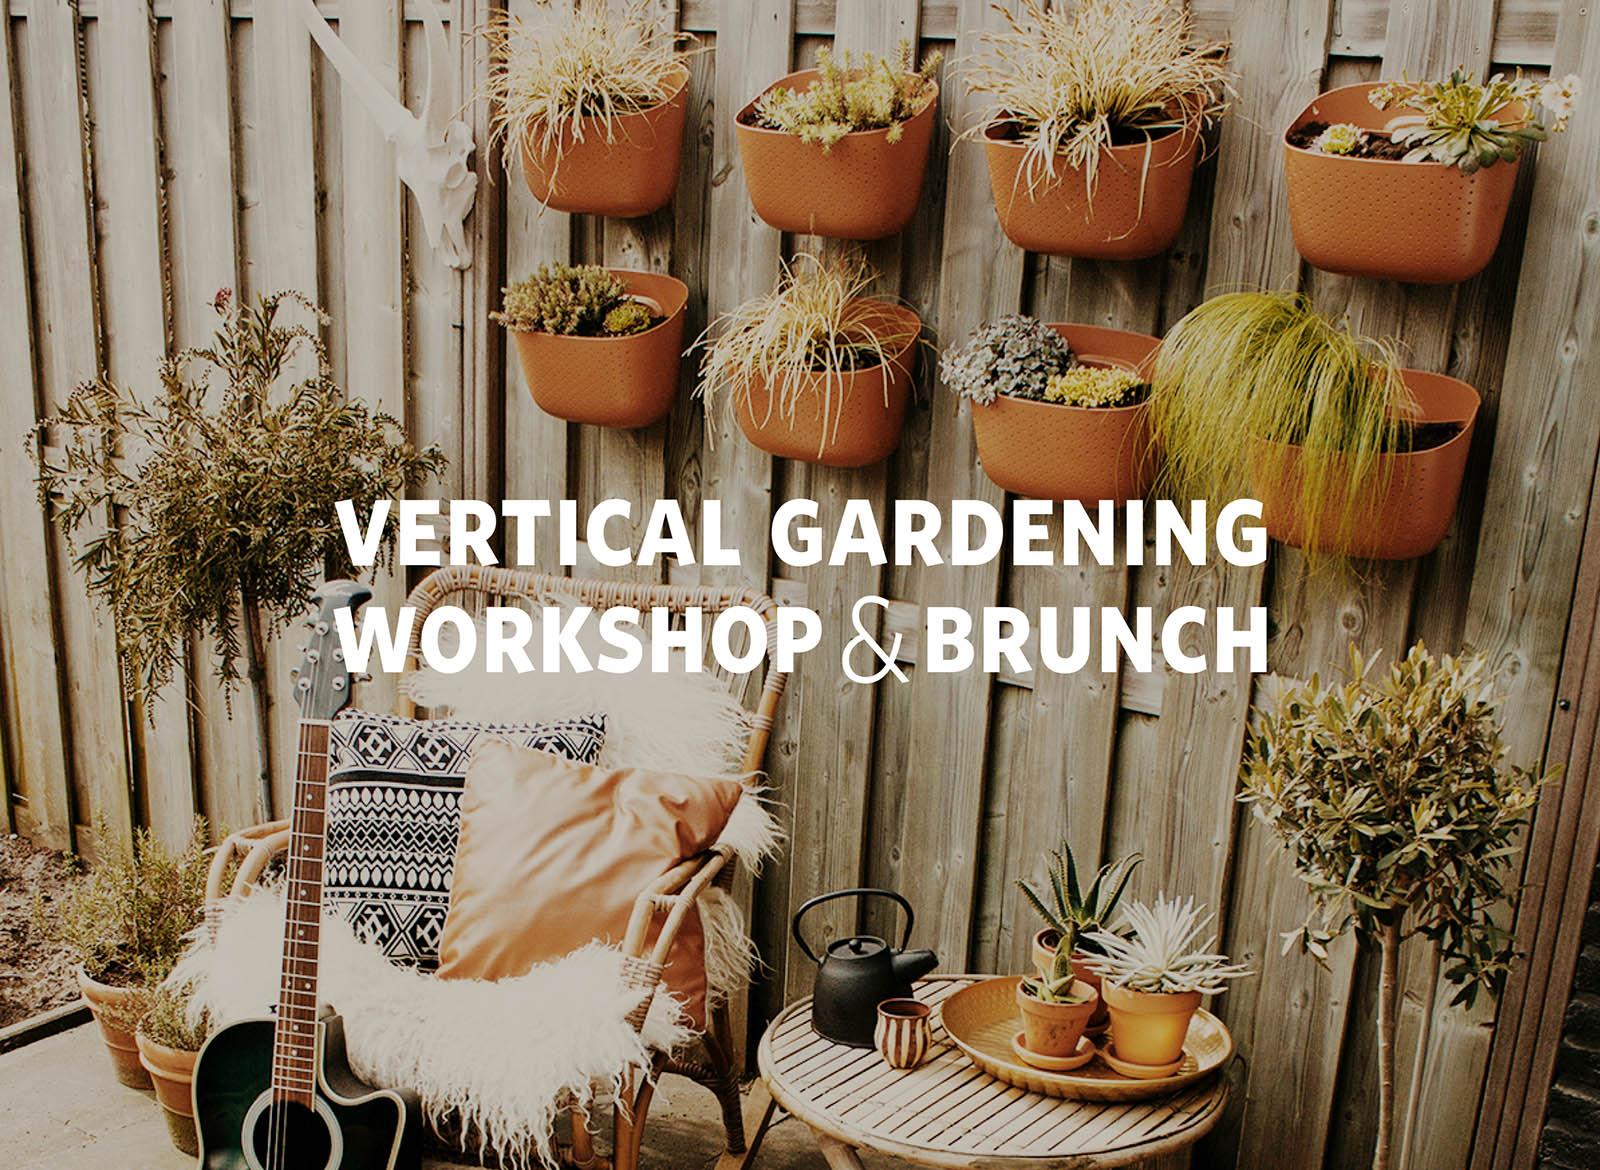 Wally Eco Vertical Gardening Workshop & Brunch at Colonial Gardens